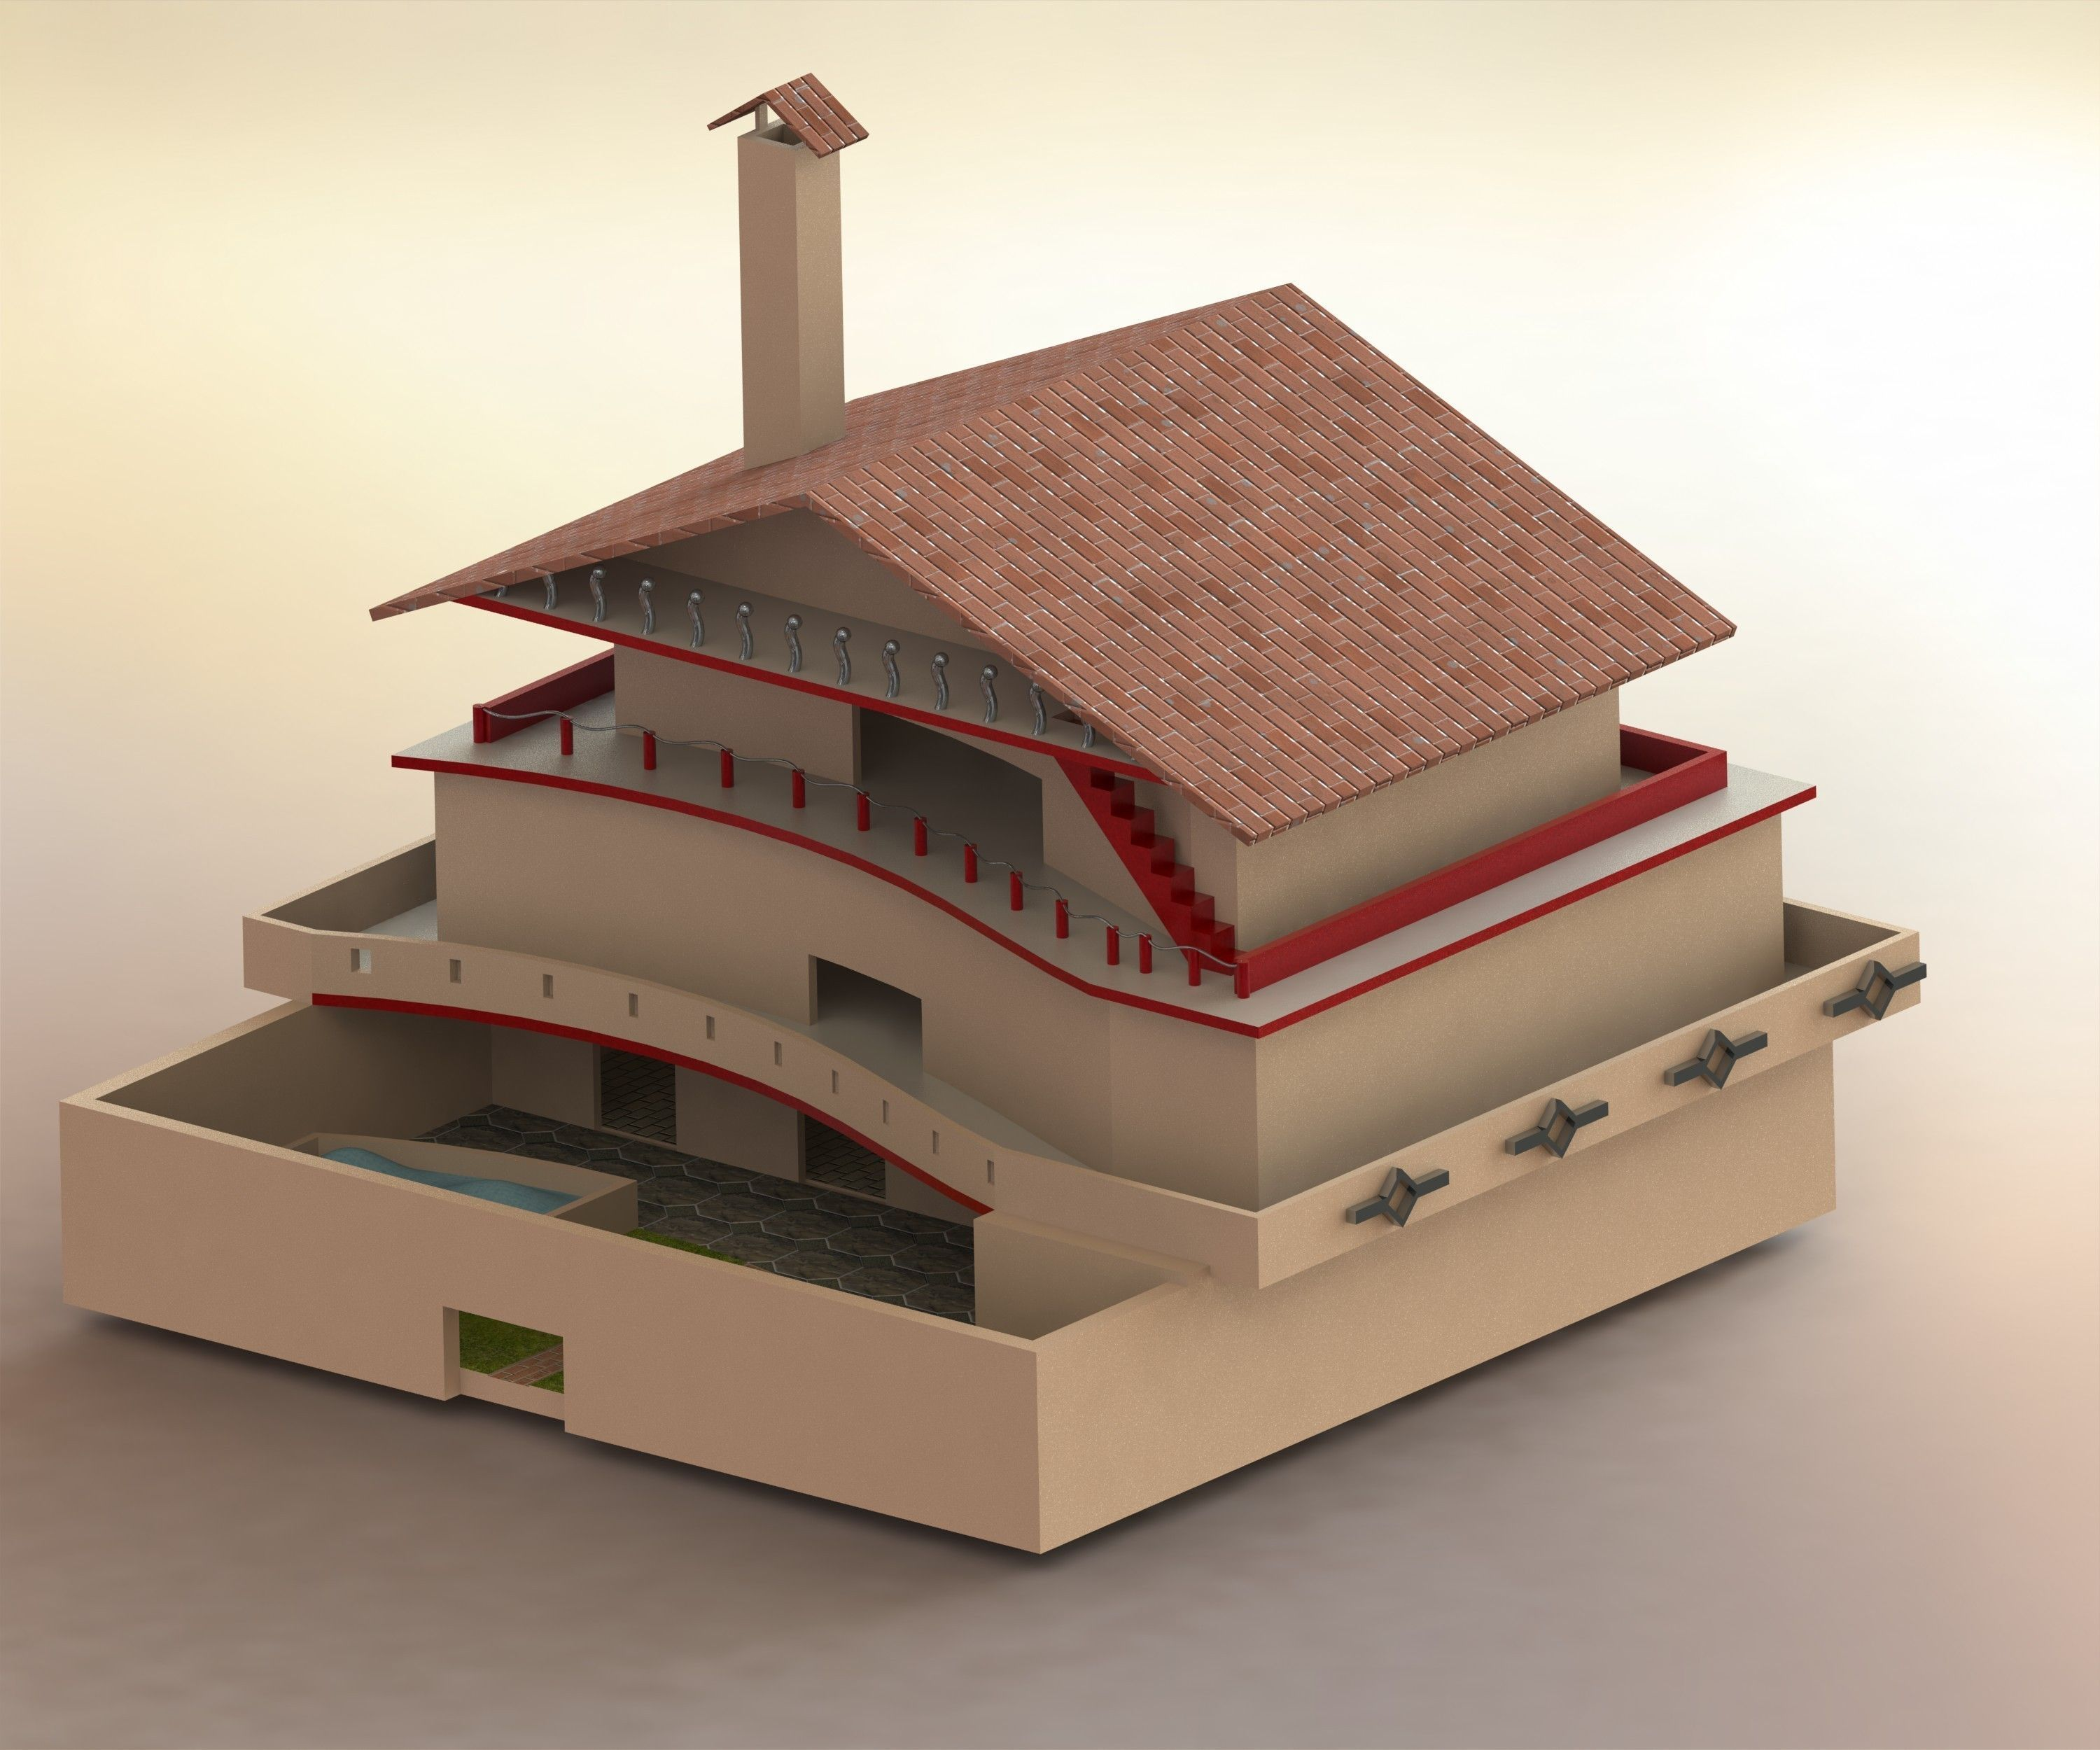 3d home with roads 3d model sldprt sldasm slddrw for Home 3d model